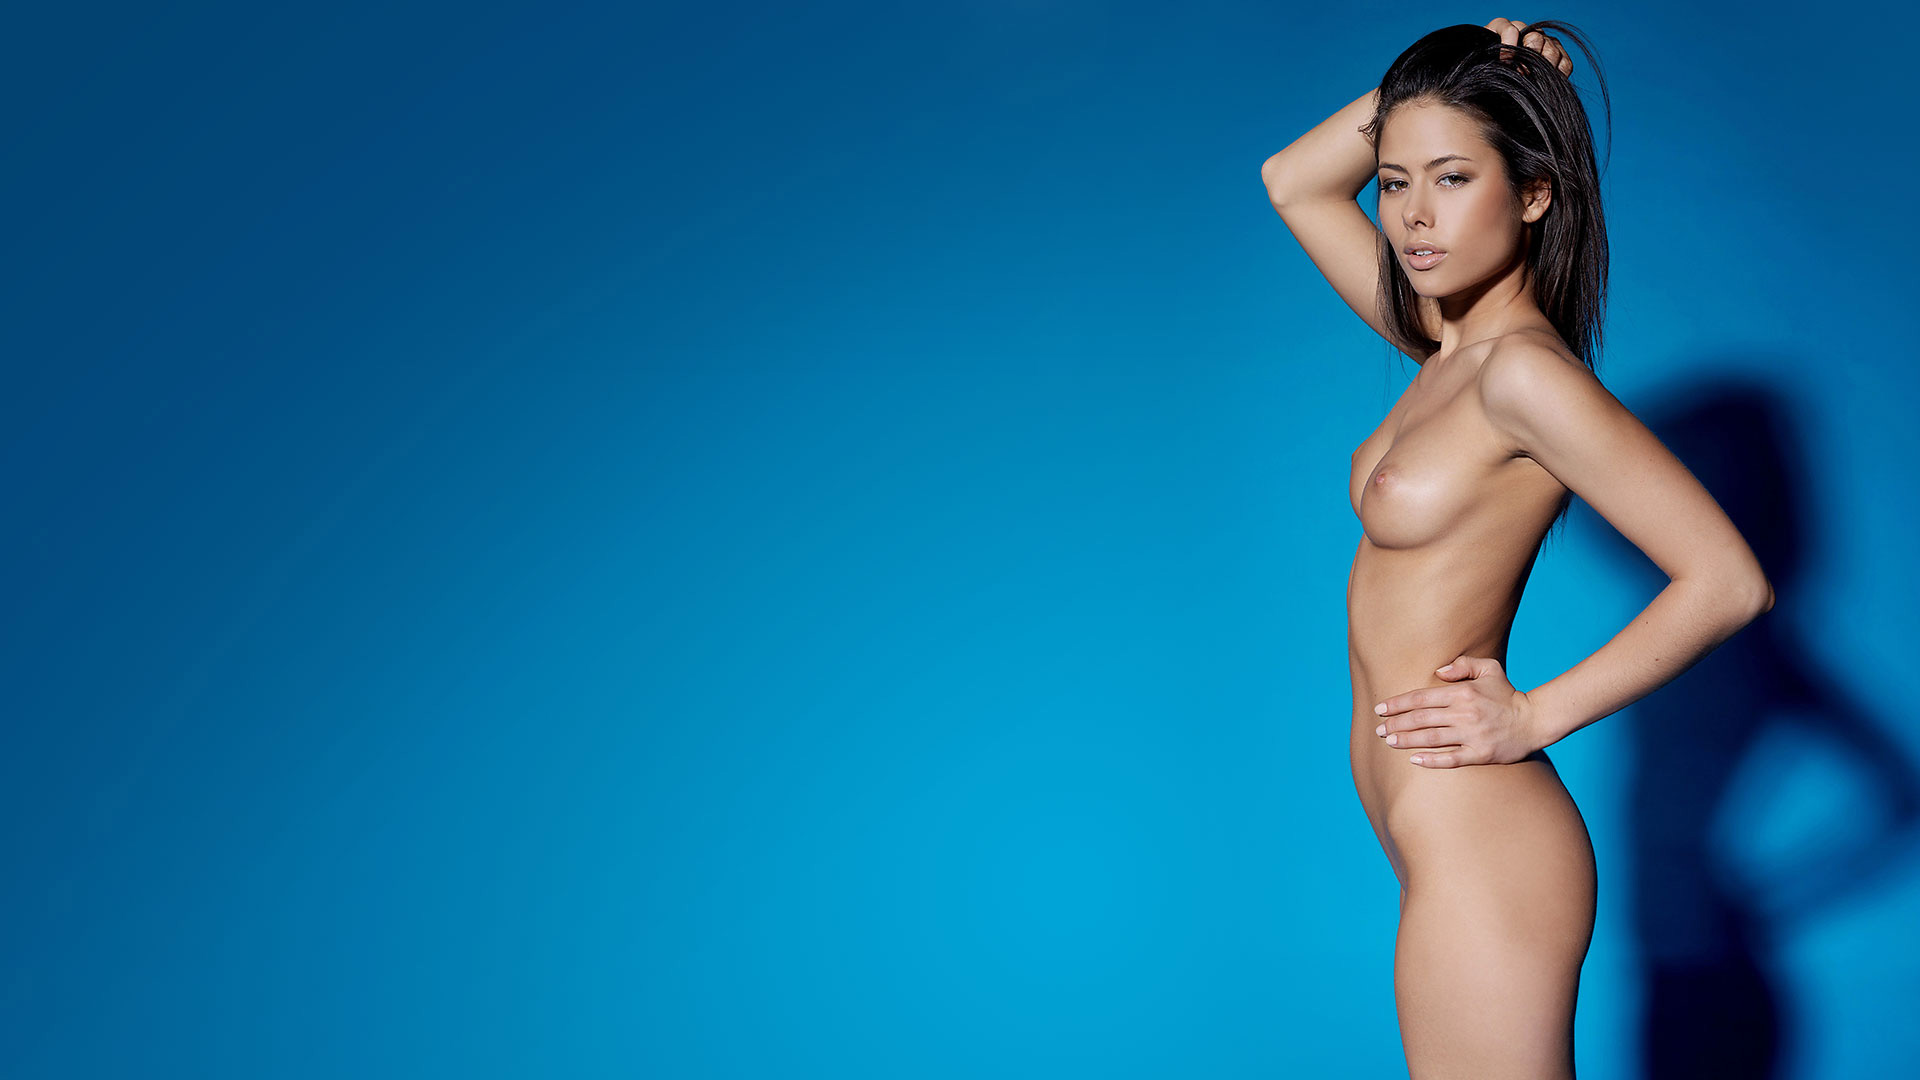 Wallpaper nude woman full size xxx gallery